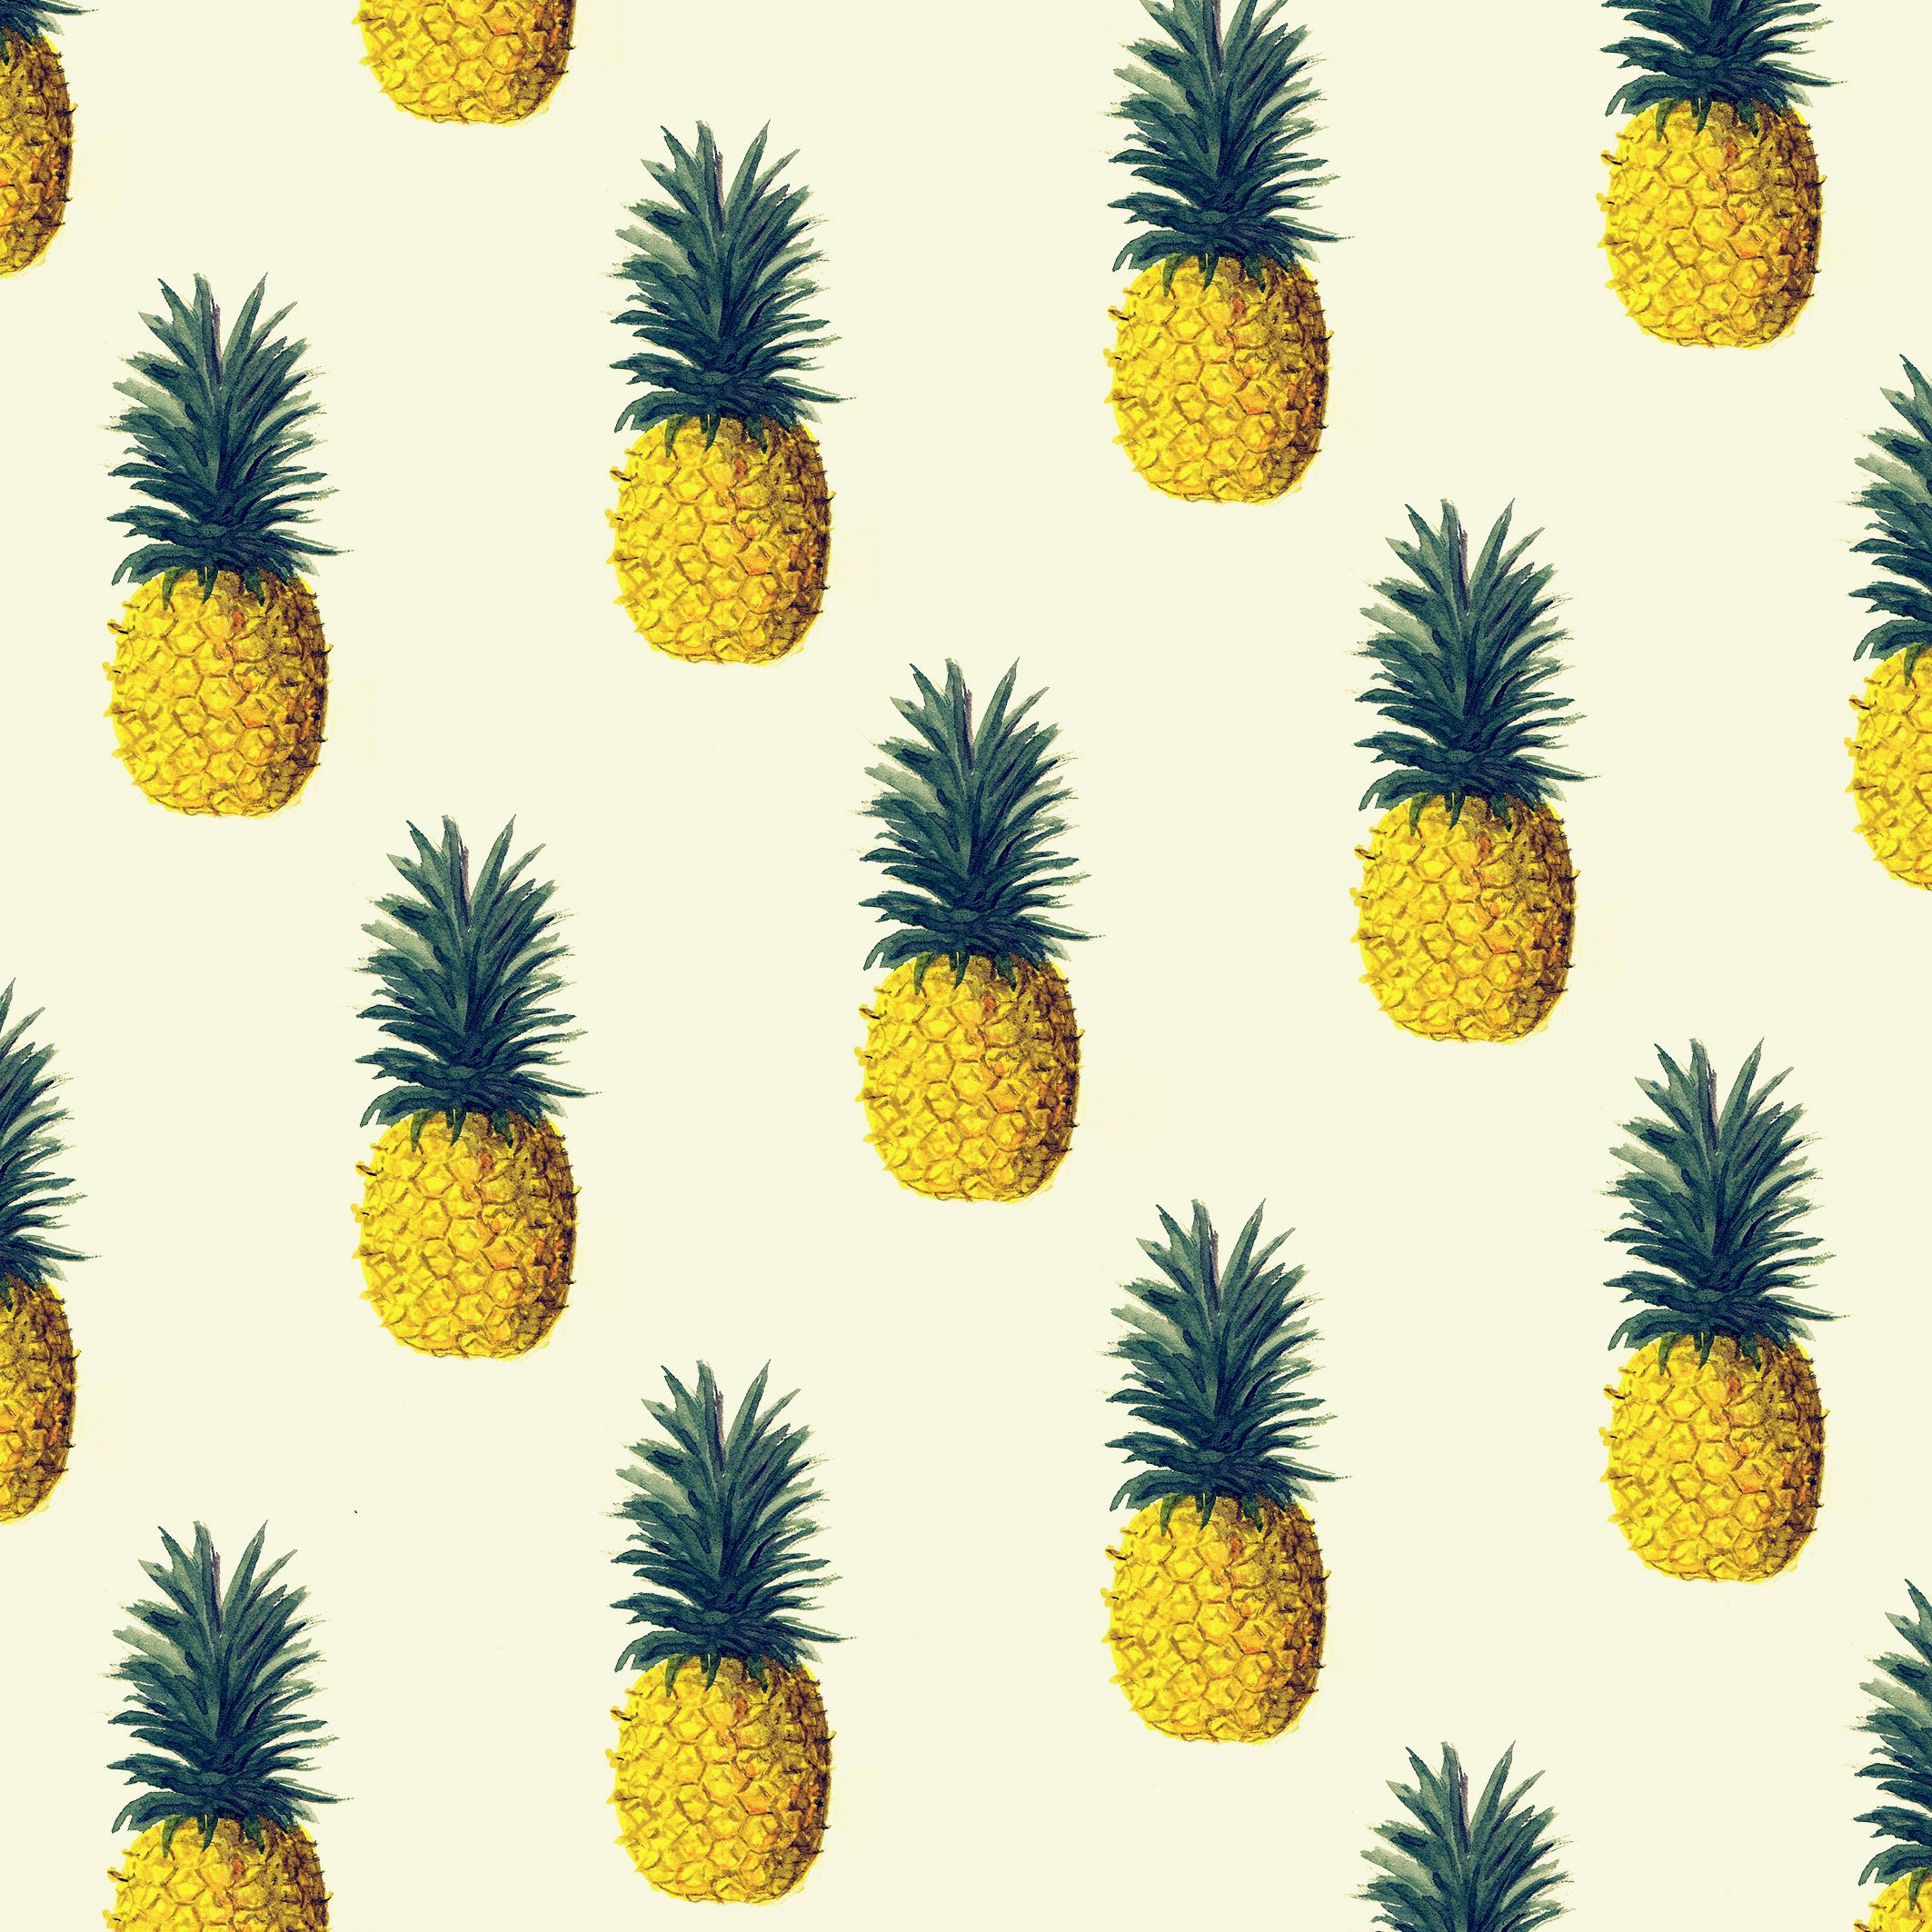 Pineapple With Sunglasses Tumblr Pineapple Pattern Vanessa Vanderhaven Class Ideas